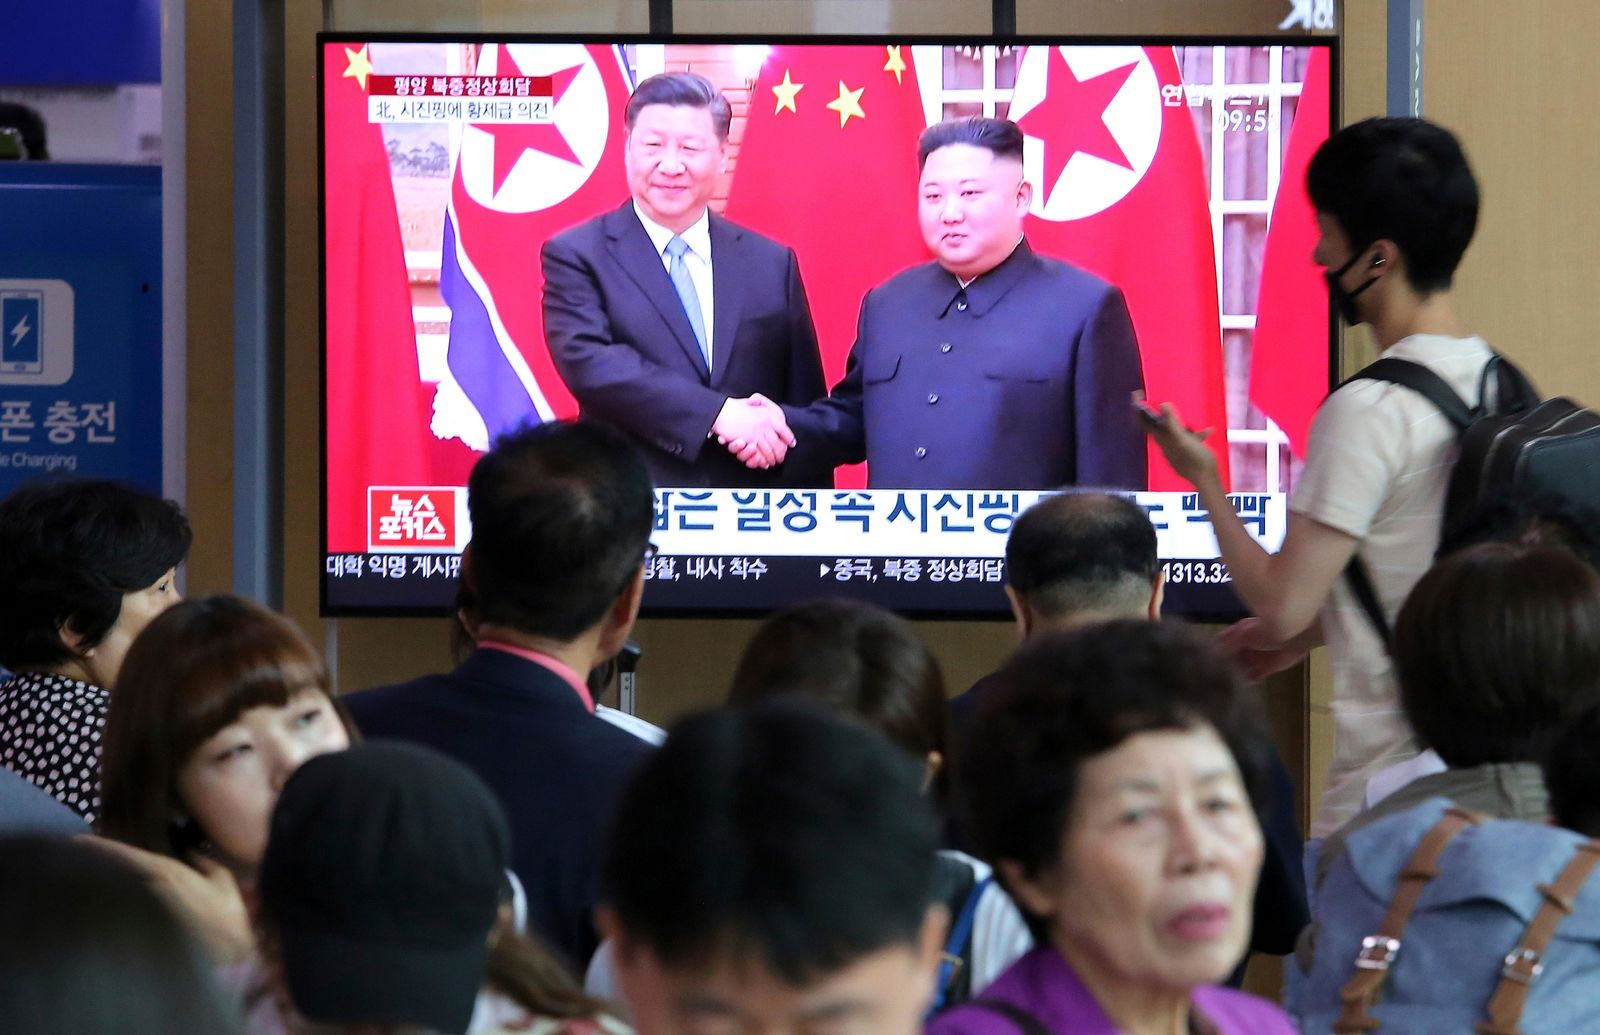 "People watch a TV screen showing North Korean leader Kim Jong Un, right, welcoming Chinese President Xi Jinping, at the Seoul Railway Station in Seoul, South Korea, Friday, June 21, 2019. North Korea's state media says leader Kim Jong Un and Chinese President Xi Jinping held broad discussions over the political situation surrounding the Korean Peninsula and called for stronger bilateral ties in the face of ""serious and complicated changes"" in the region. The signs read: ""Xi Jinping has a lot of schedules."" (AP Photo/Ahn Young-joon)"